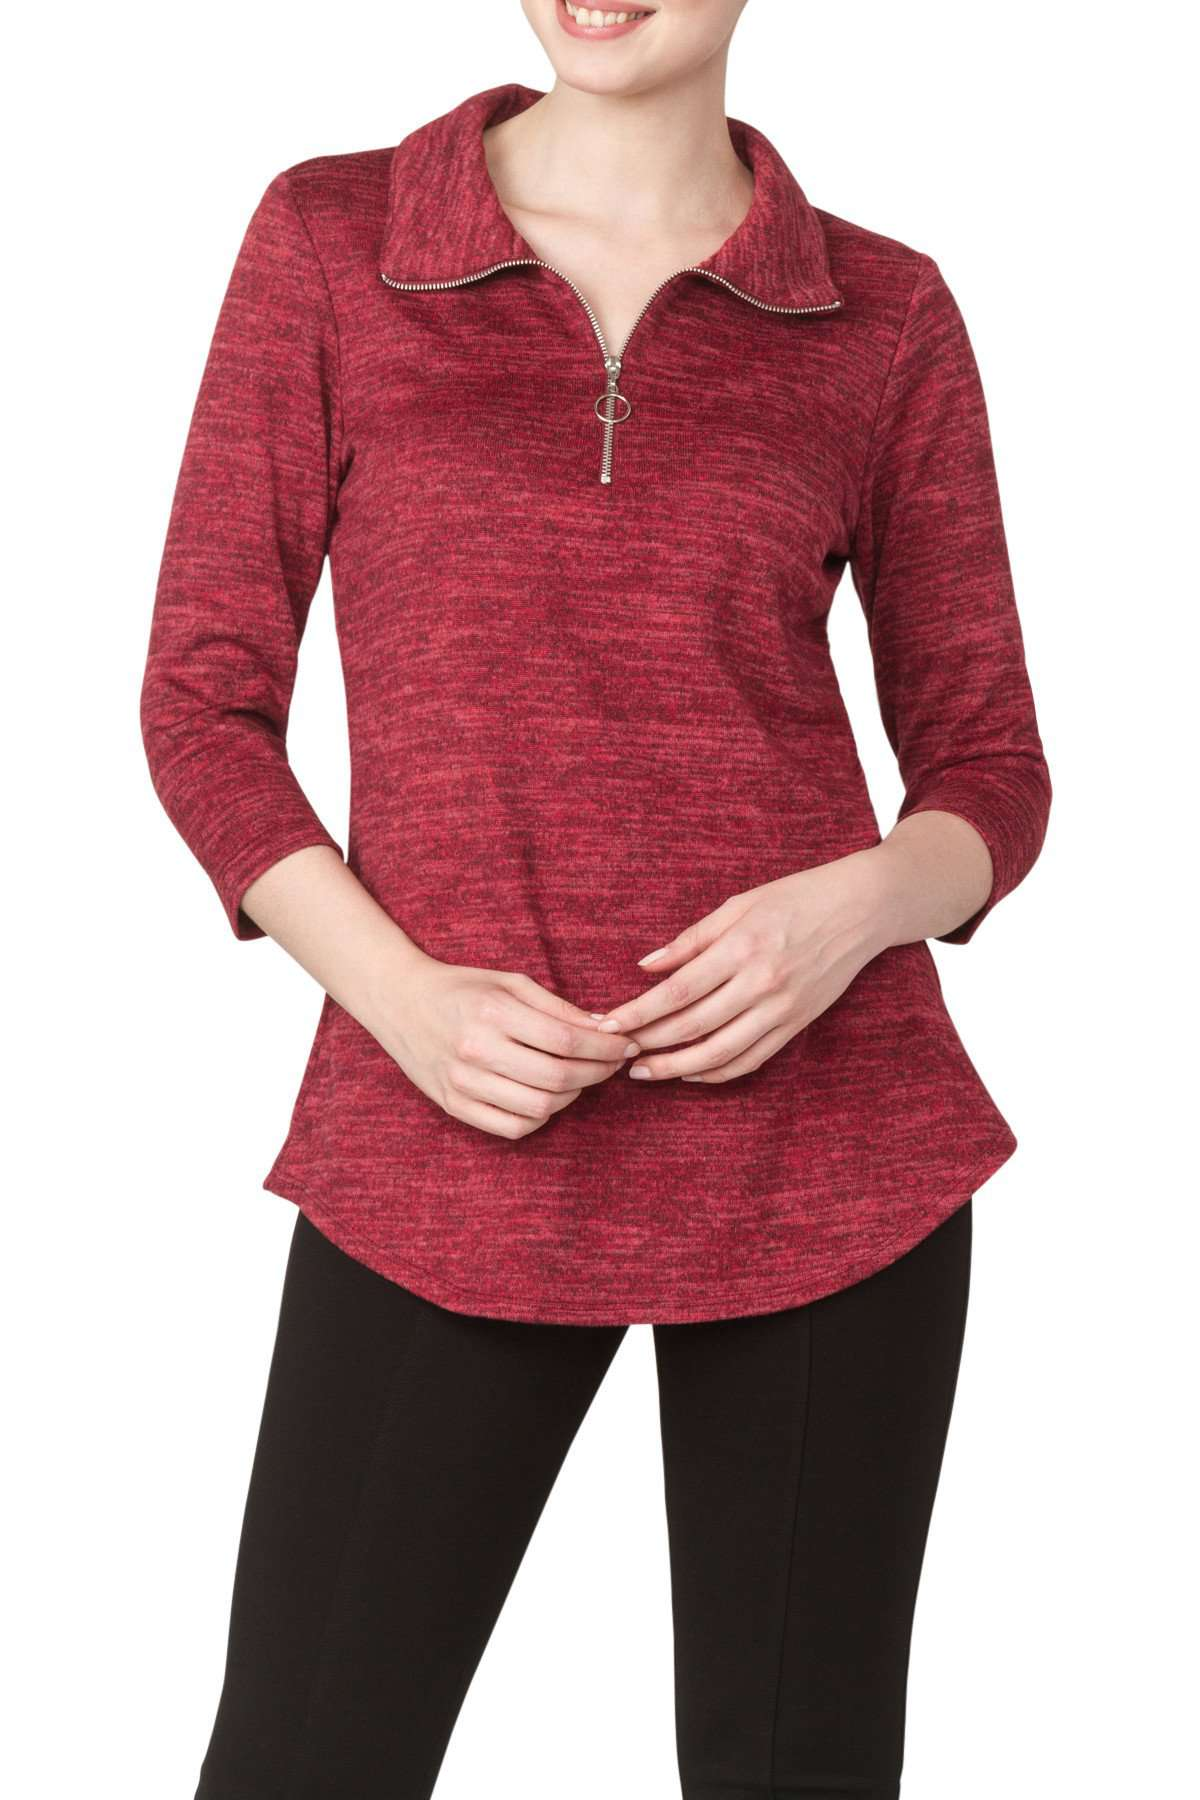 Women's Red Zipper Front Top - Yvonne Marie - Yvonne Marie